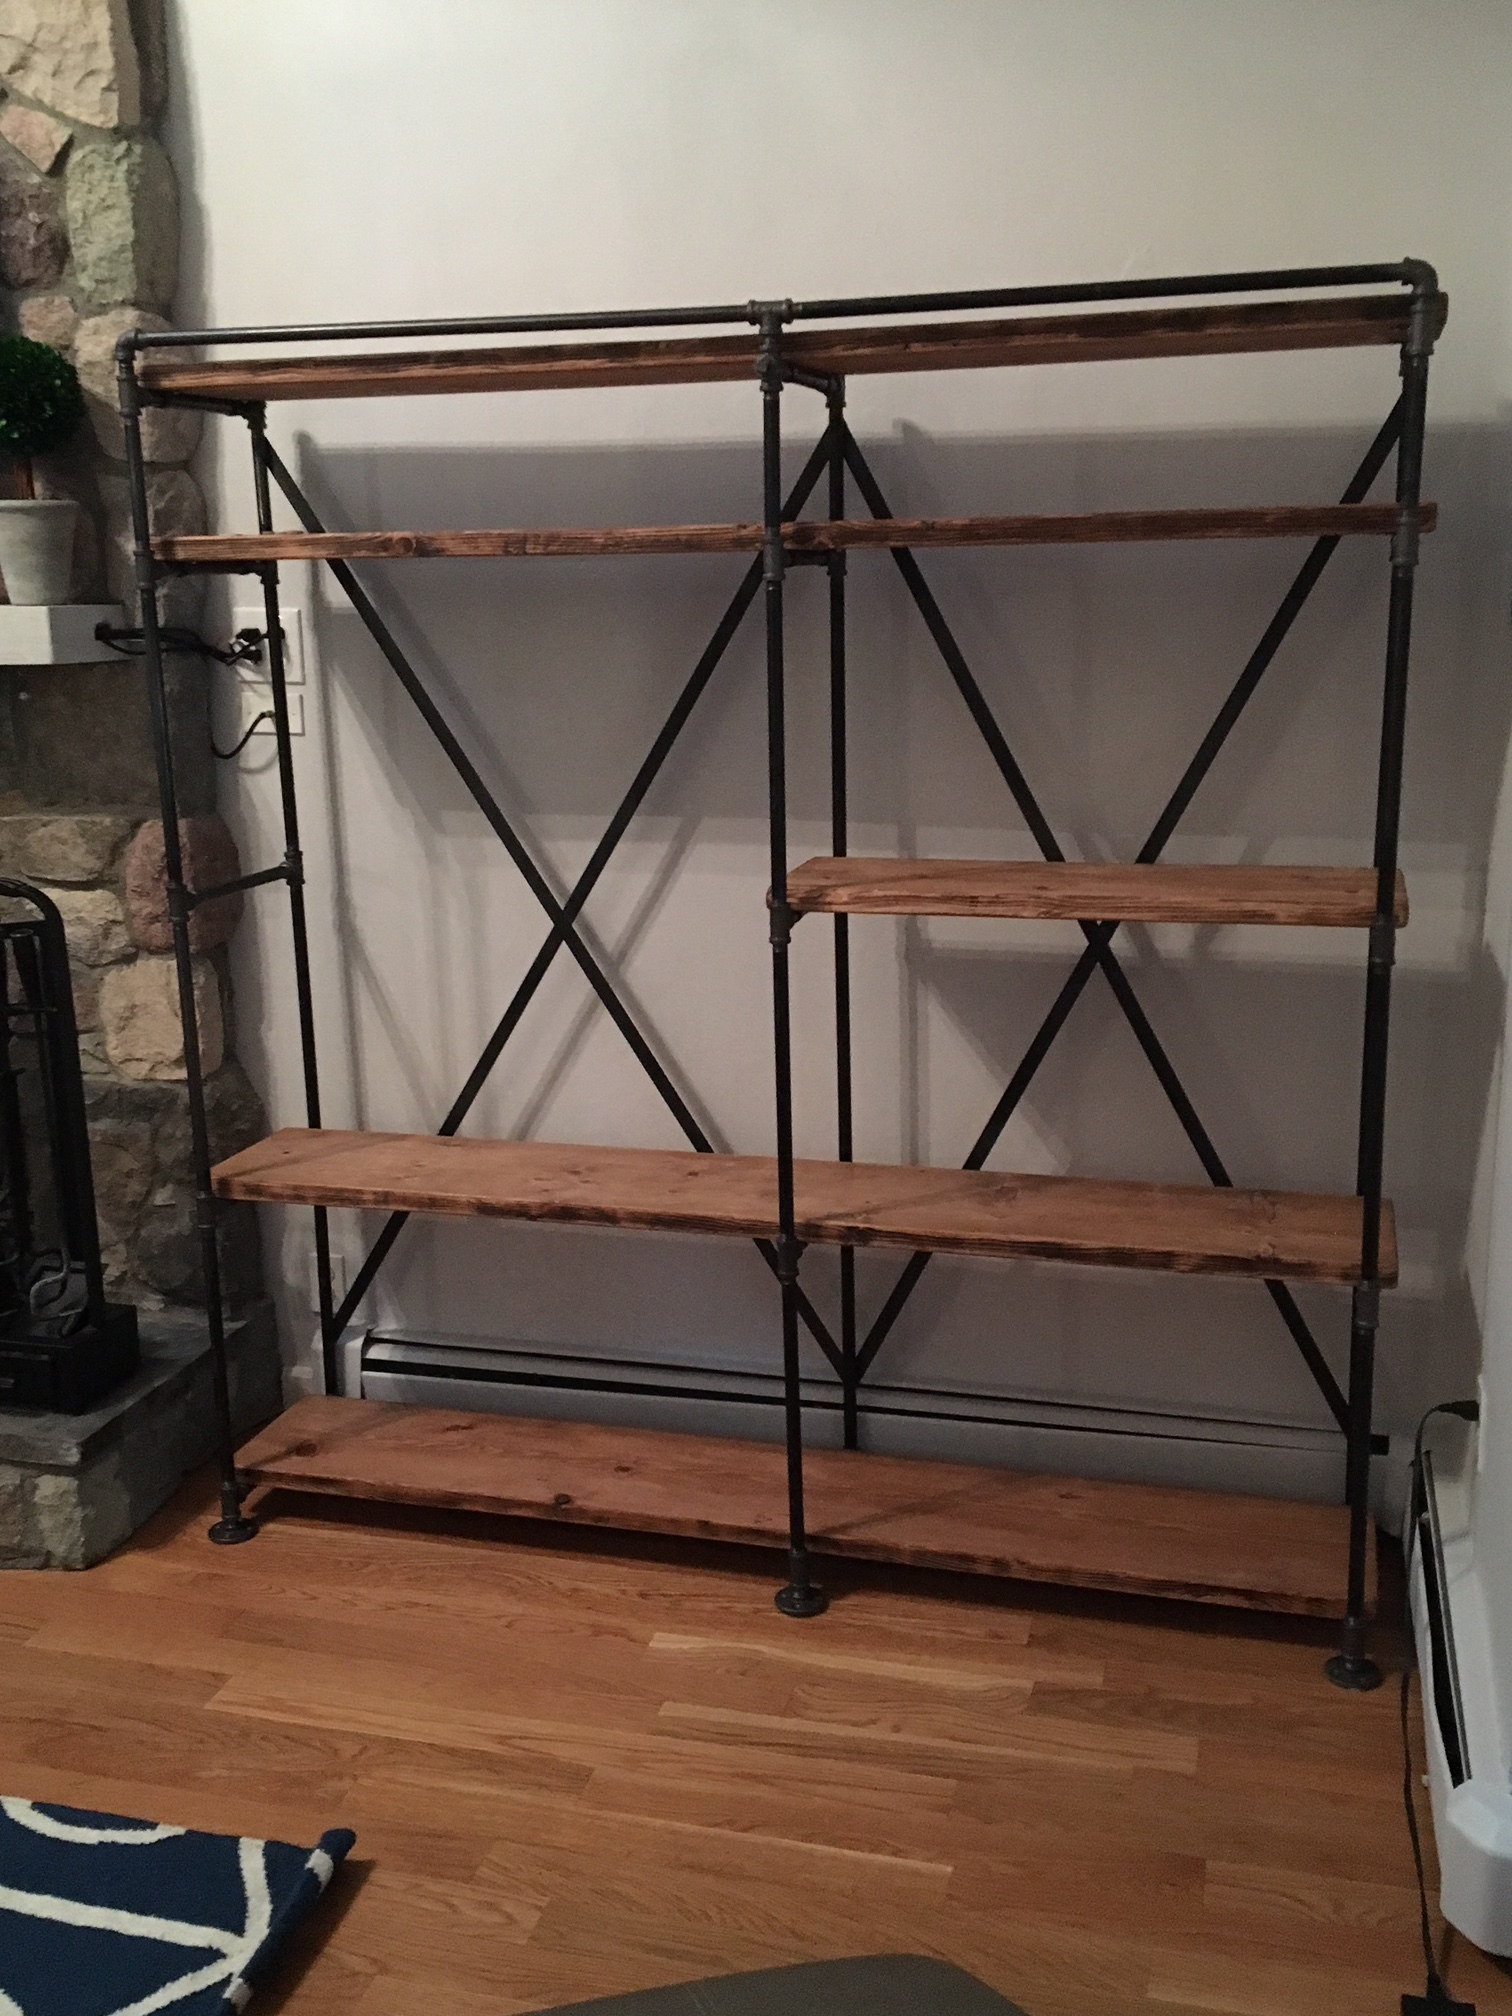 iron wood shelving unit.JPG